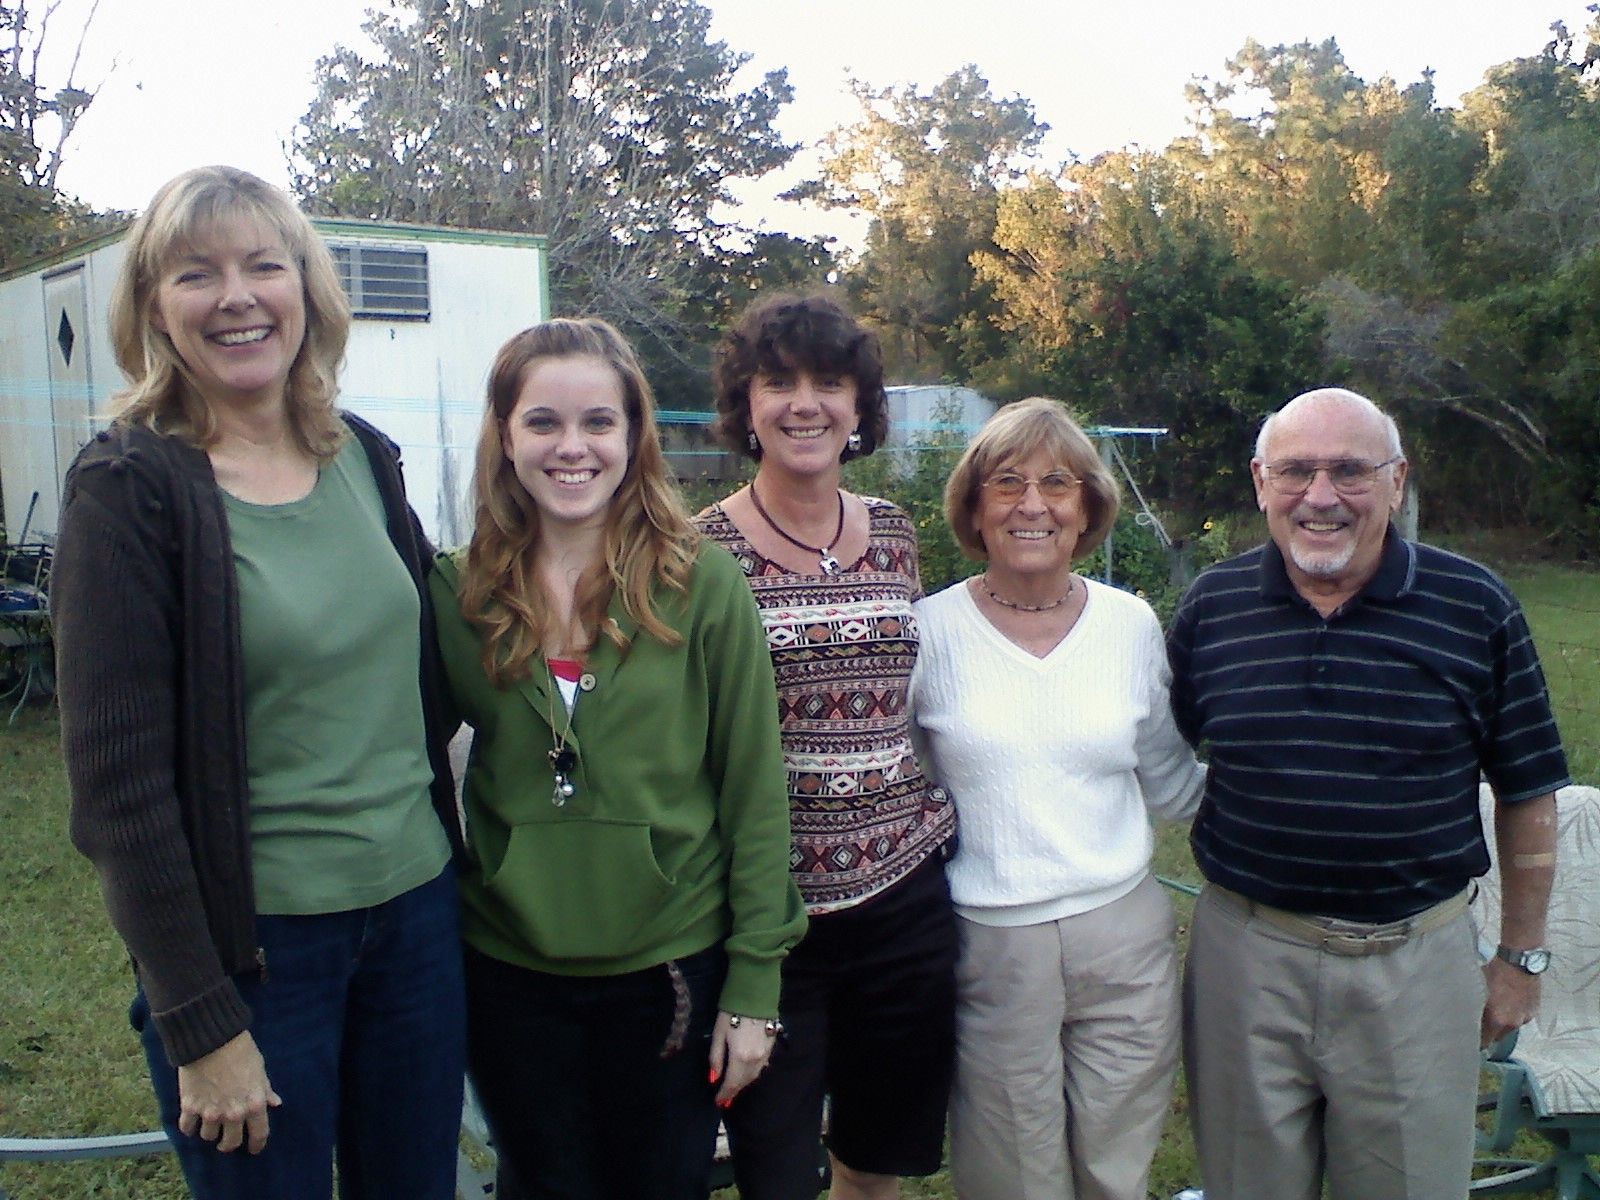 Thanksgiving with friends and family